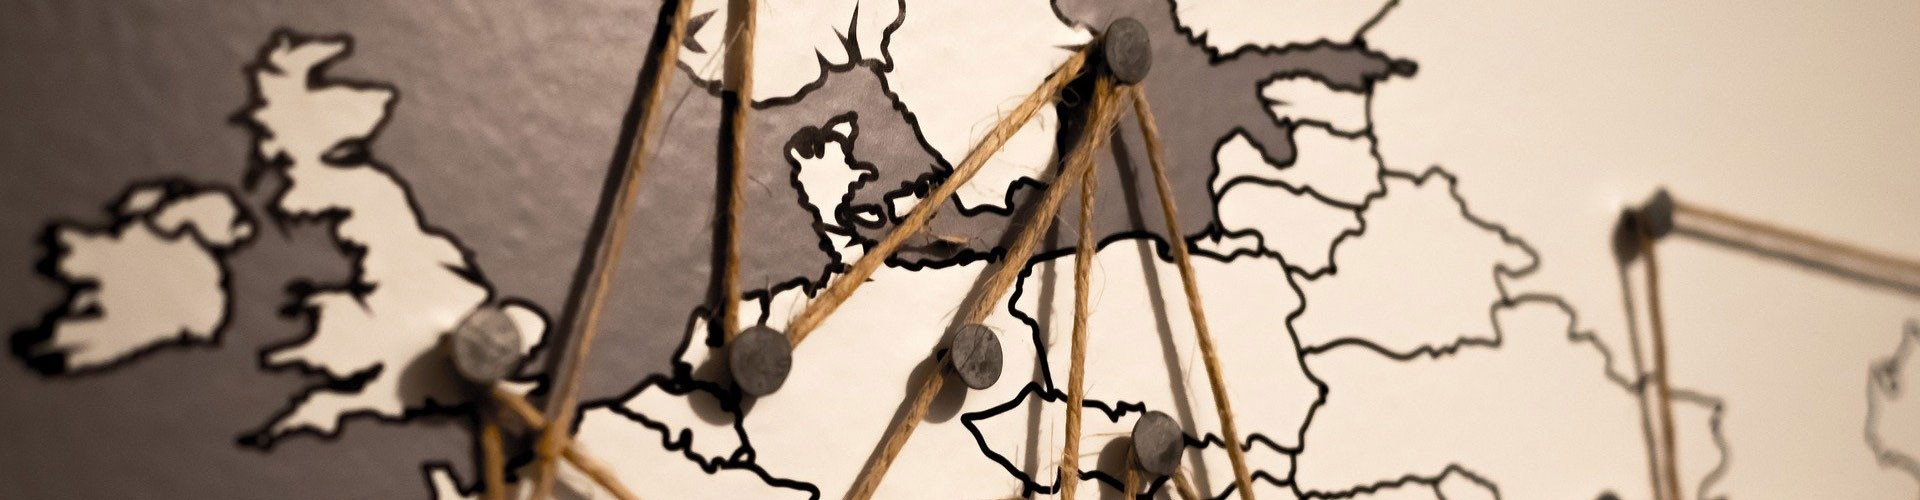 map of Northern Europe with pins and string